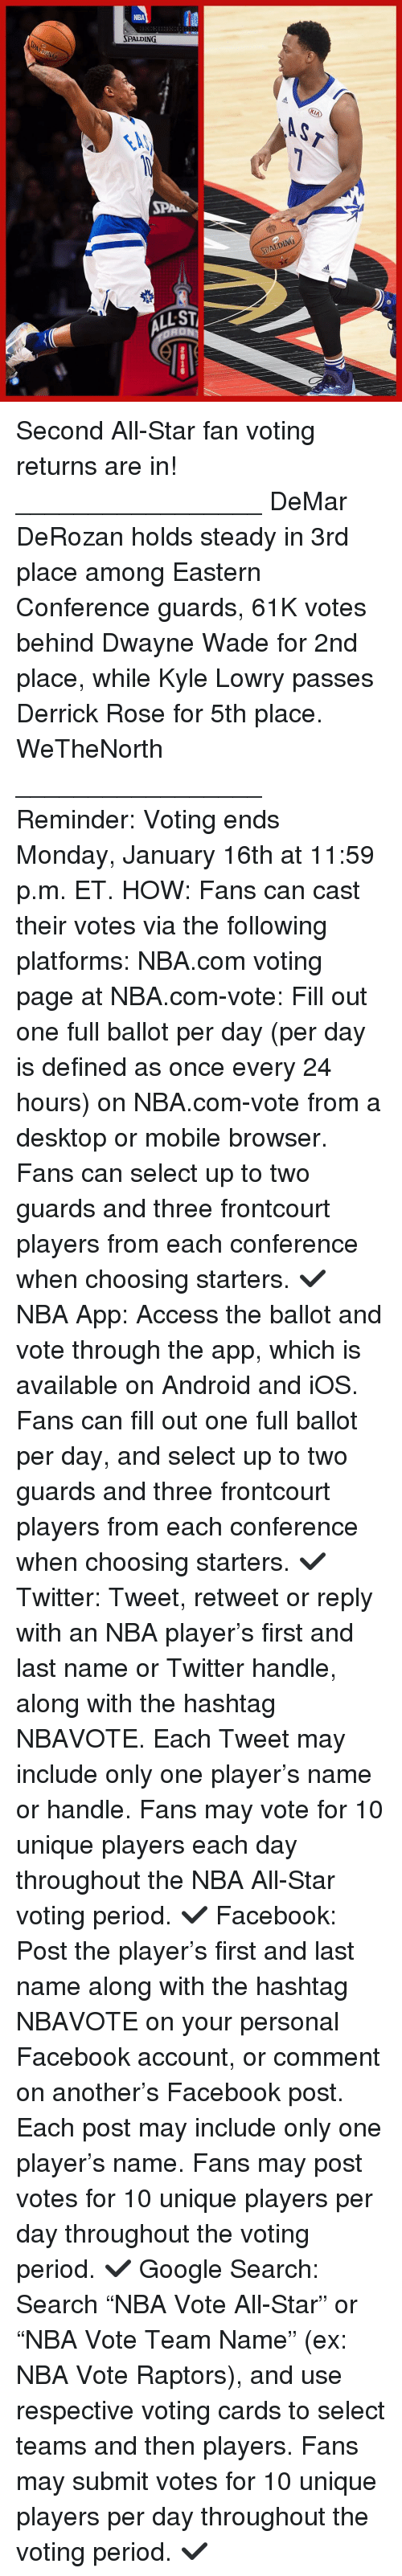 """All Star, Android, and DeMar DeRozan: NBA  SPALDING  ALLST  SPALDING  KIA Second All-Star fan voting returns are in! _________________ DeMar DeRozan holds steady in 3rd place among Eastern Conference guards, 61K votes behind Dwayne Wade for 2nd place, while Kyle Lowry passes Derrick Rose for 5th place. WeTheNorth _________________ Reminder: Voting ends Monday, January 16th at 11:59 p.m. ET. HOW: Fans can cast their votes via the following platforms: NBA.com voting page at NBA.com-vote: Fill out one full ballot per day (per day is defined as once every 24 hours) on NBA.com-vote from a desktop or mobile browser. Fans can select up to two guards and three frontcourt players from each conference when choosing starters. ✔ NBA App: Access the ballot and vote through the app, which is available on Android and iOS. Fans can fill out one full ballot per day, and select up to two guards and three frontcourt players from each conference when choosing starters. ✔ Twitter: Tweet, retweet or reply with an NBA player's first and last name or Twitter handle, along with the hashtag NBAVOTE. Each Tweet may include only one player's name or handle. Fans may vote for 10 unique players each day throughout the NBA All-Star voting period. ✔ Facebook: Post the player's first and last name along with the hashtag NBAVOTE on your personal Facebook account, or comment on another's Facebook post. Each post may include only one player's name. Fans may post votes for 10 unique players per day throughout the voting period. ✔ Google Search: Search """"NBA Vote All-Star"""" or """"NBA Vote Team Name"""" (ex: NBA Vote Raptors), and use respective voting cards to select teams and then players. Fans may submit votes for 10 unique players per day throughout the voting period. ✔"""